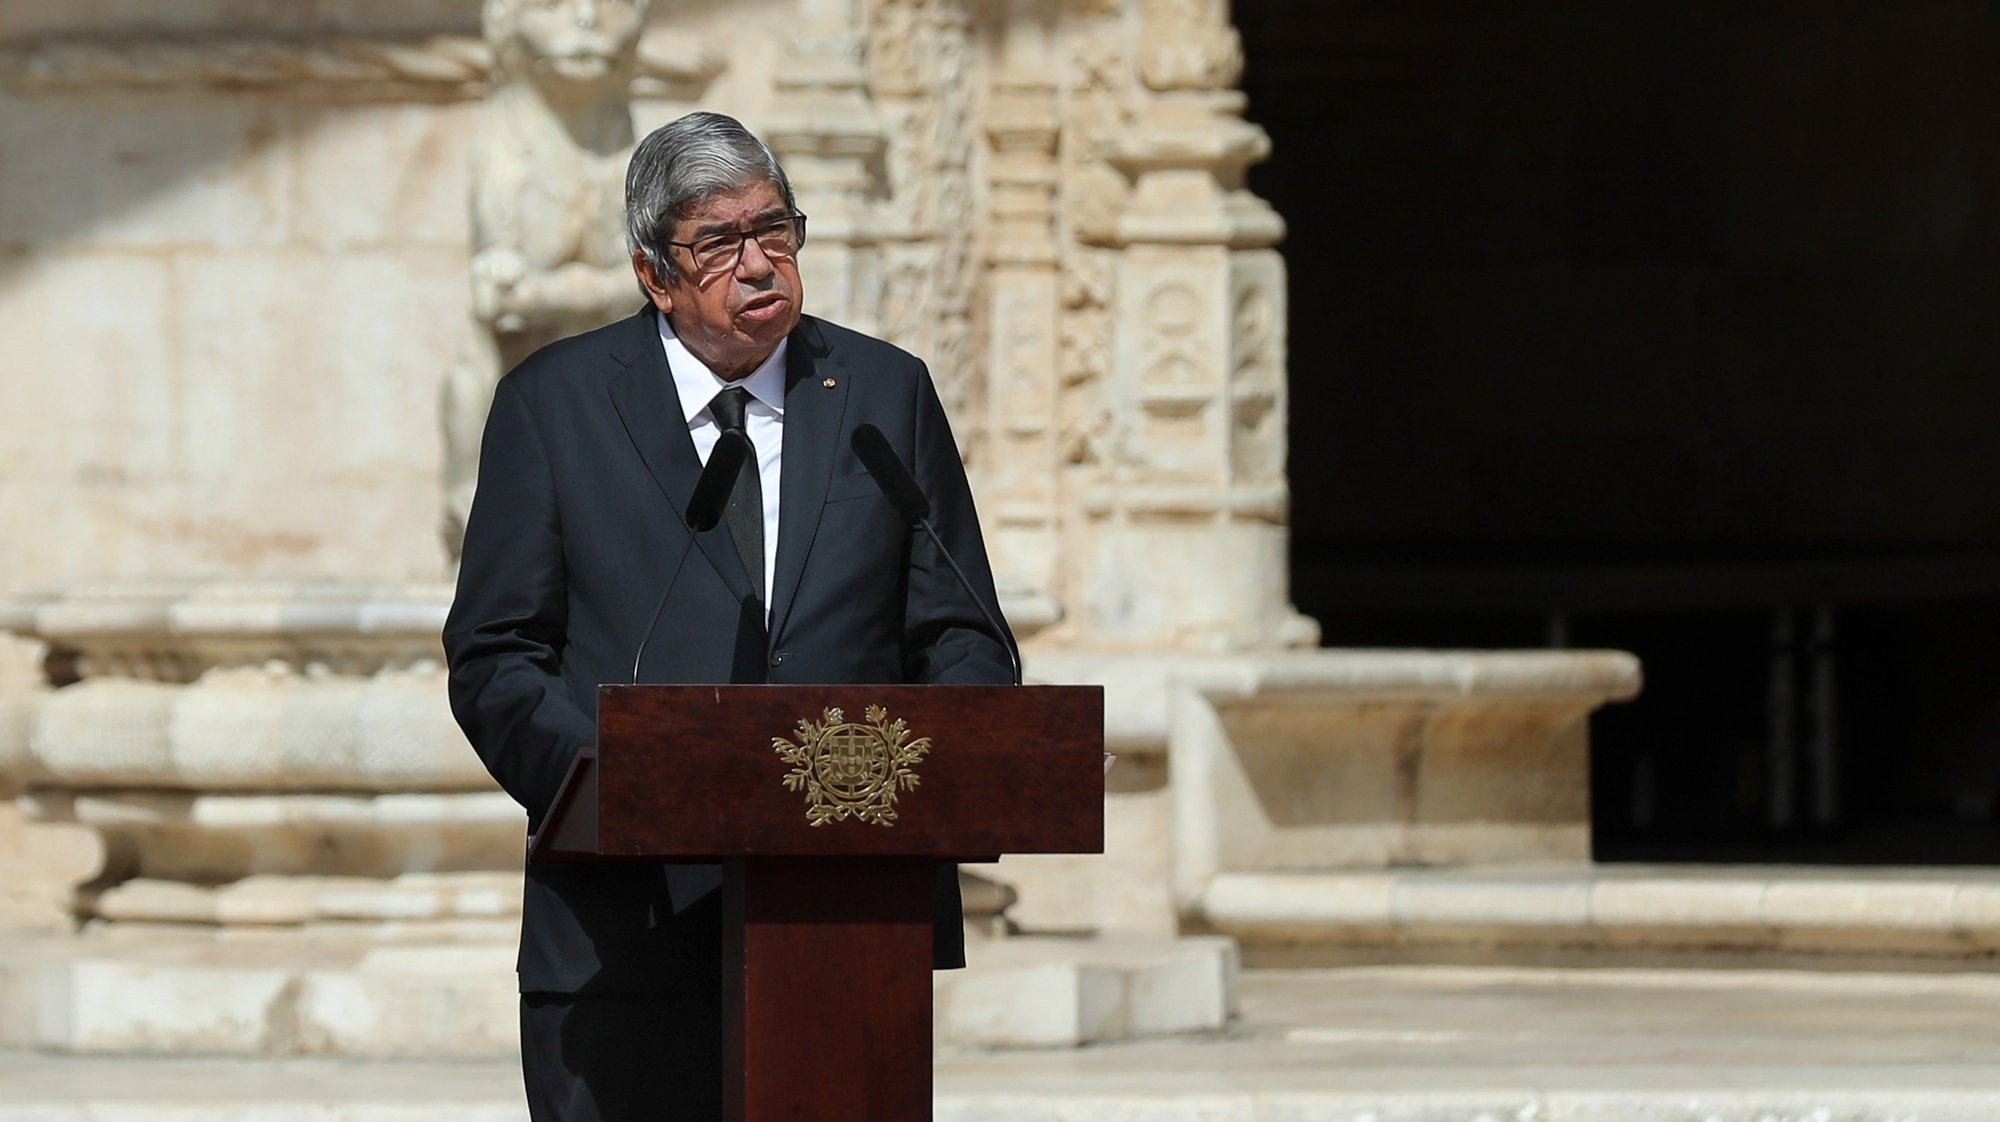 President of the Assembly of the Republic, Ferro Rodrigues during the funeral service for the late Portuguese President Jorge Sampaio at Jeronimos Monastery, Portugal, 12 september 2021. Jorge Sampaio, former secretary-general of the PS (1989/1992) and two-term President of the Republic (1996/2006), died on Friday, at the age of 81, at Santa Cruz Hospital, in Lisbon, where he had been hospitalized since August 27, following respiratory difficulties. MIGUEL A. LOPES//LUSA